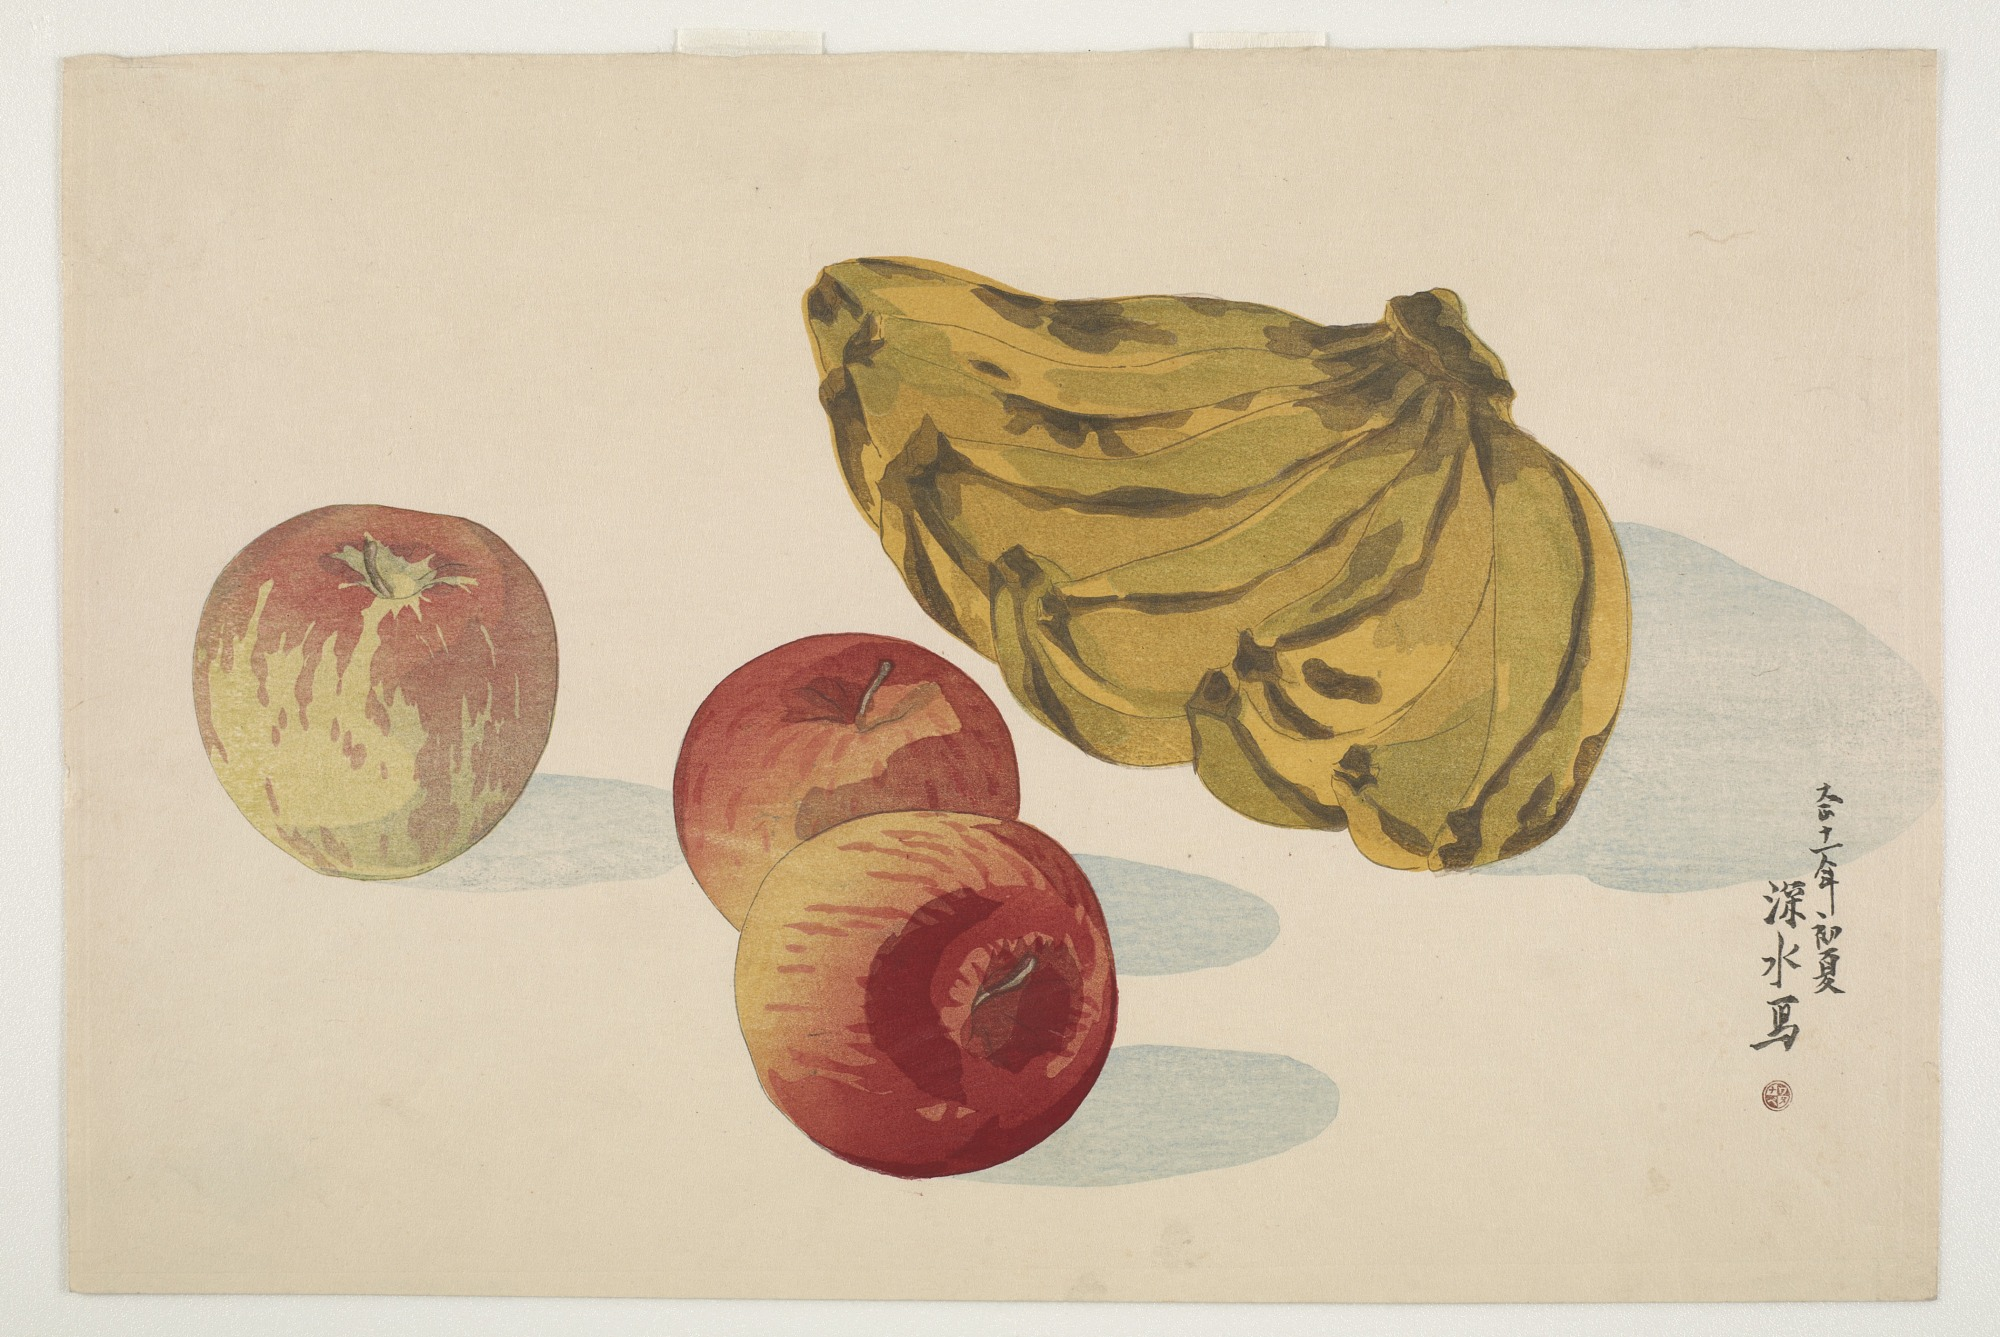 images for Bananas and apples